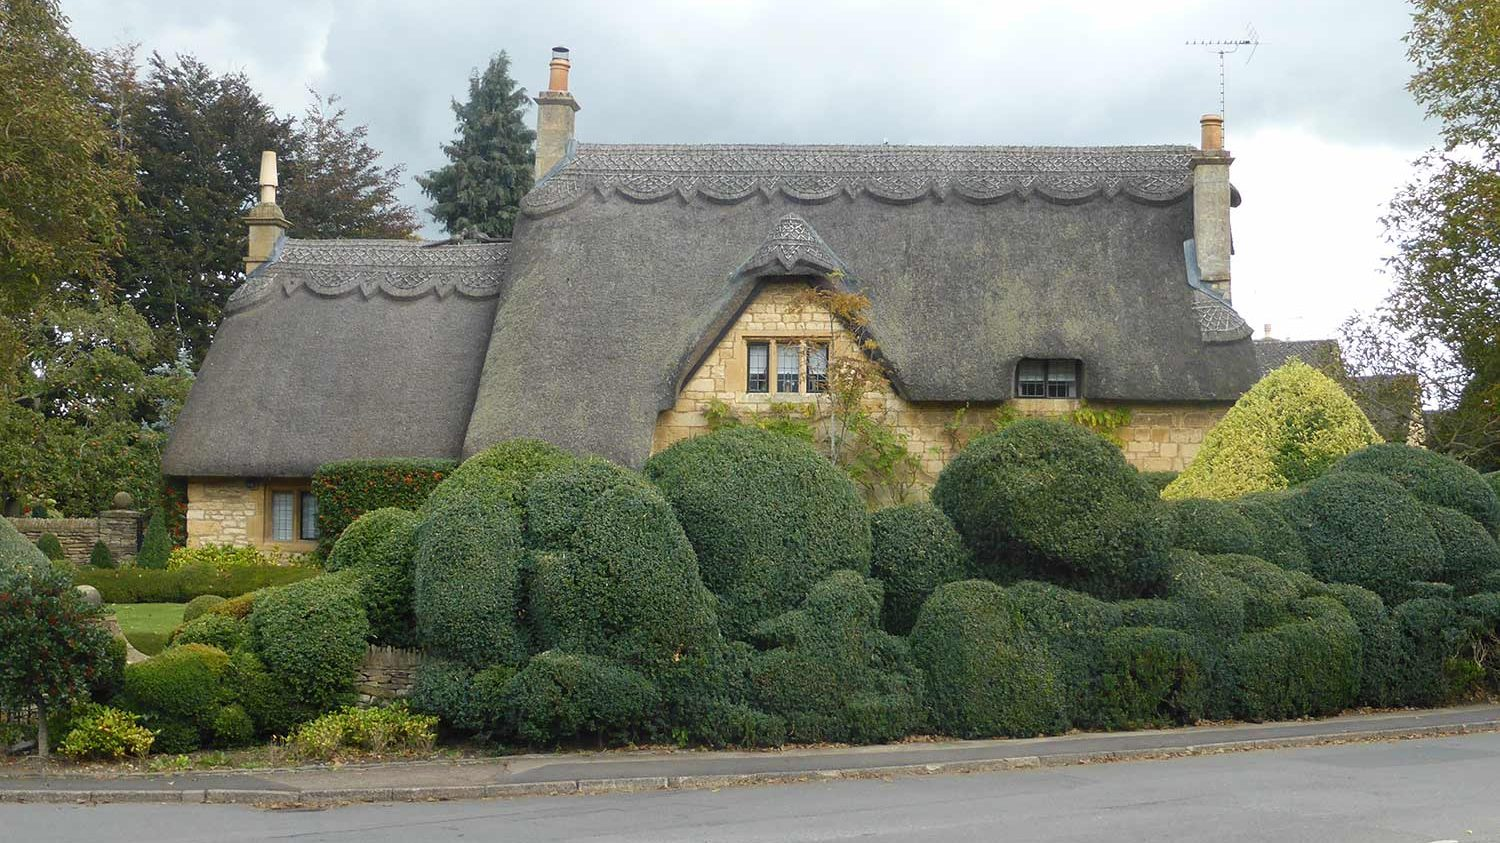 Cotswold House in Chipping Campden